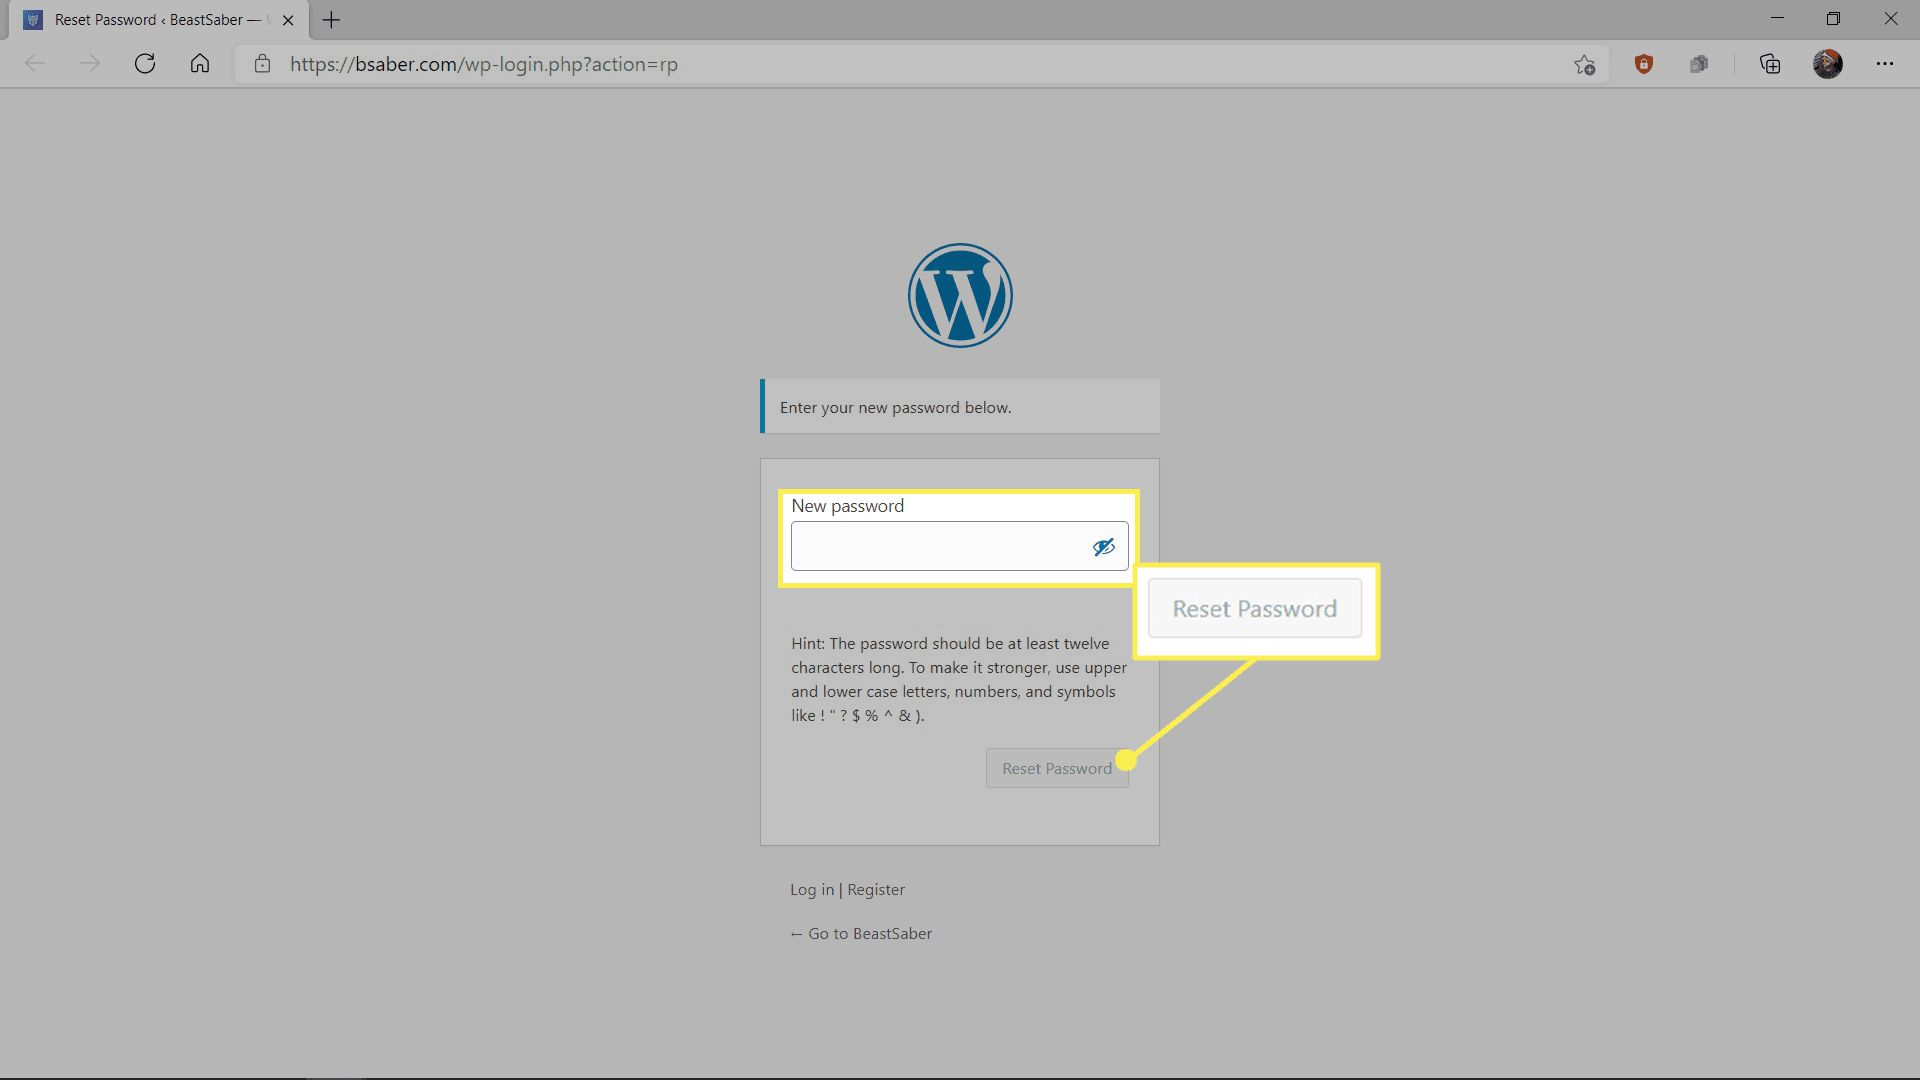 Creating a password on the bsaber website.